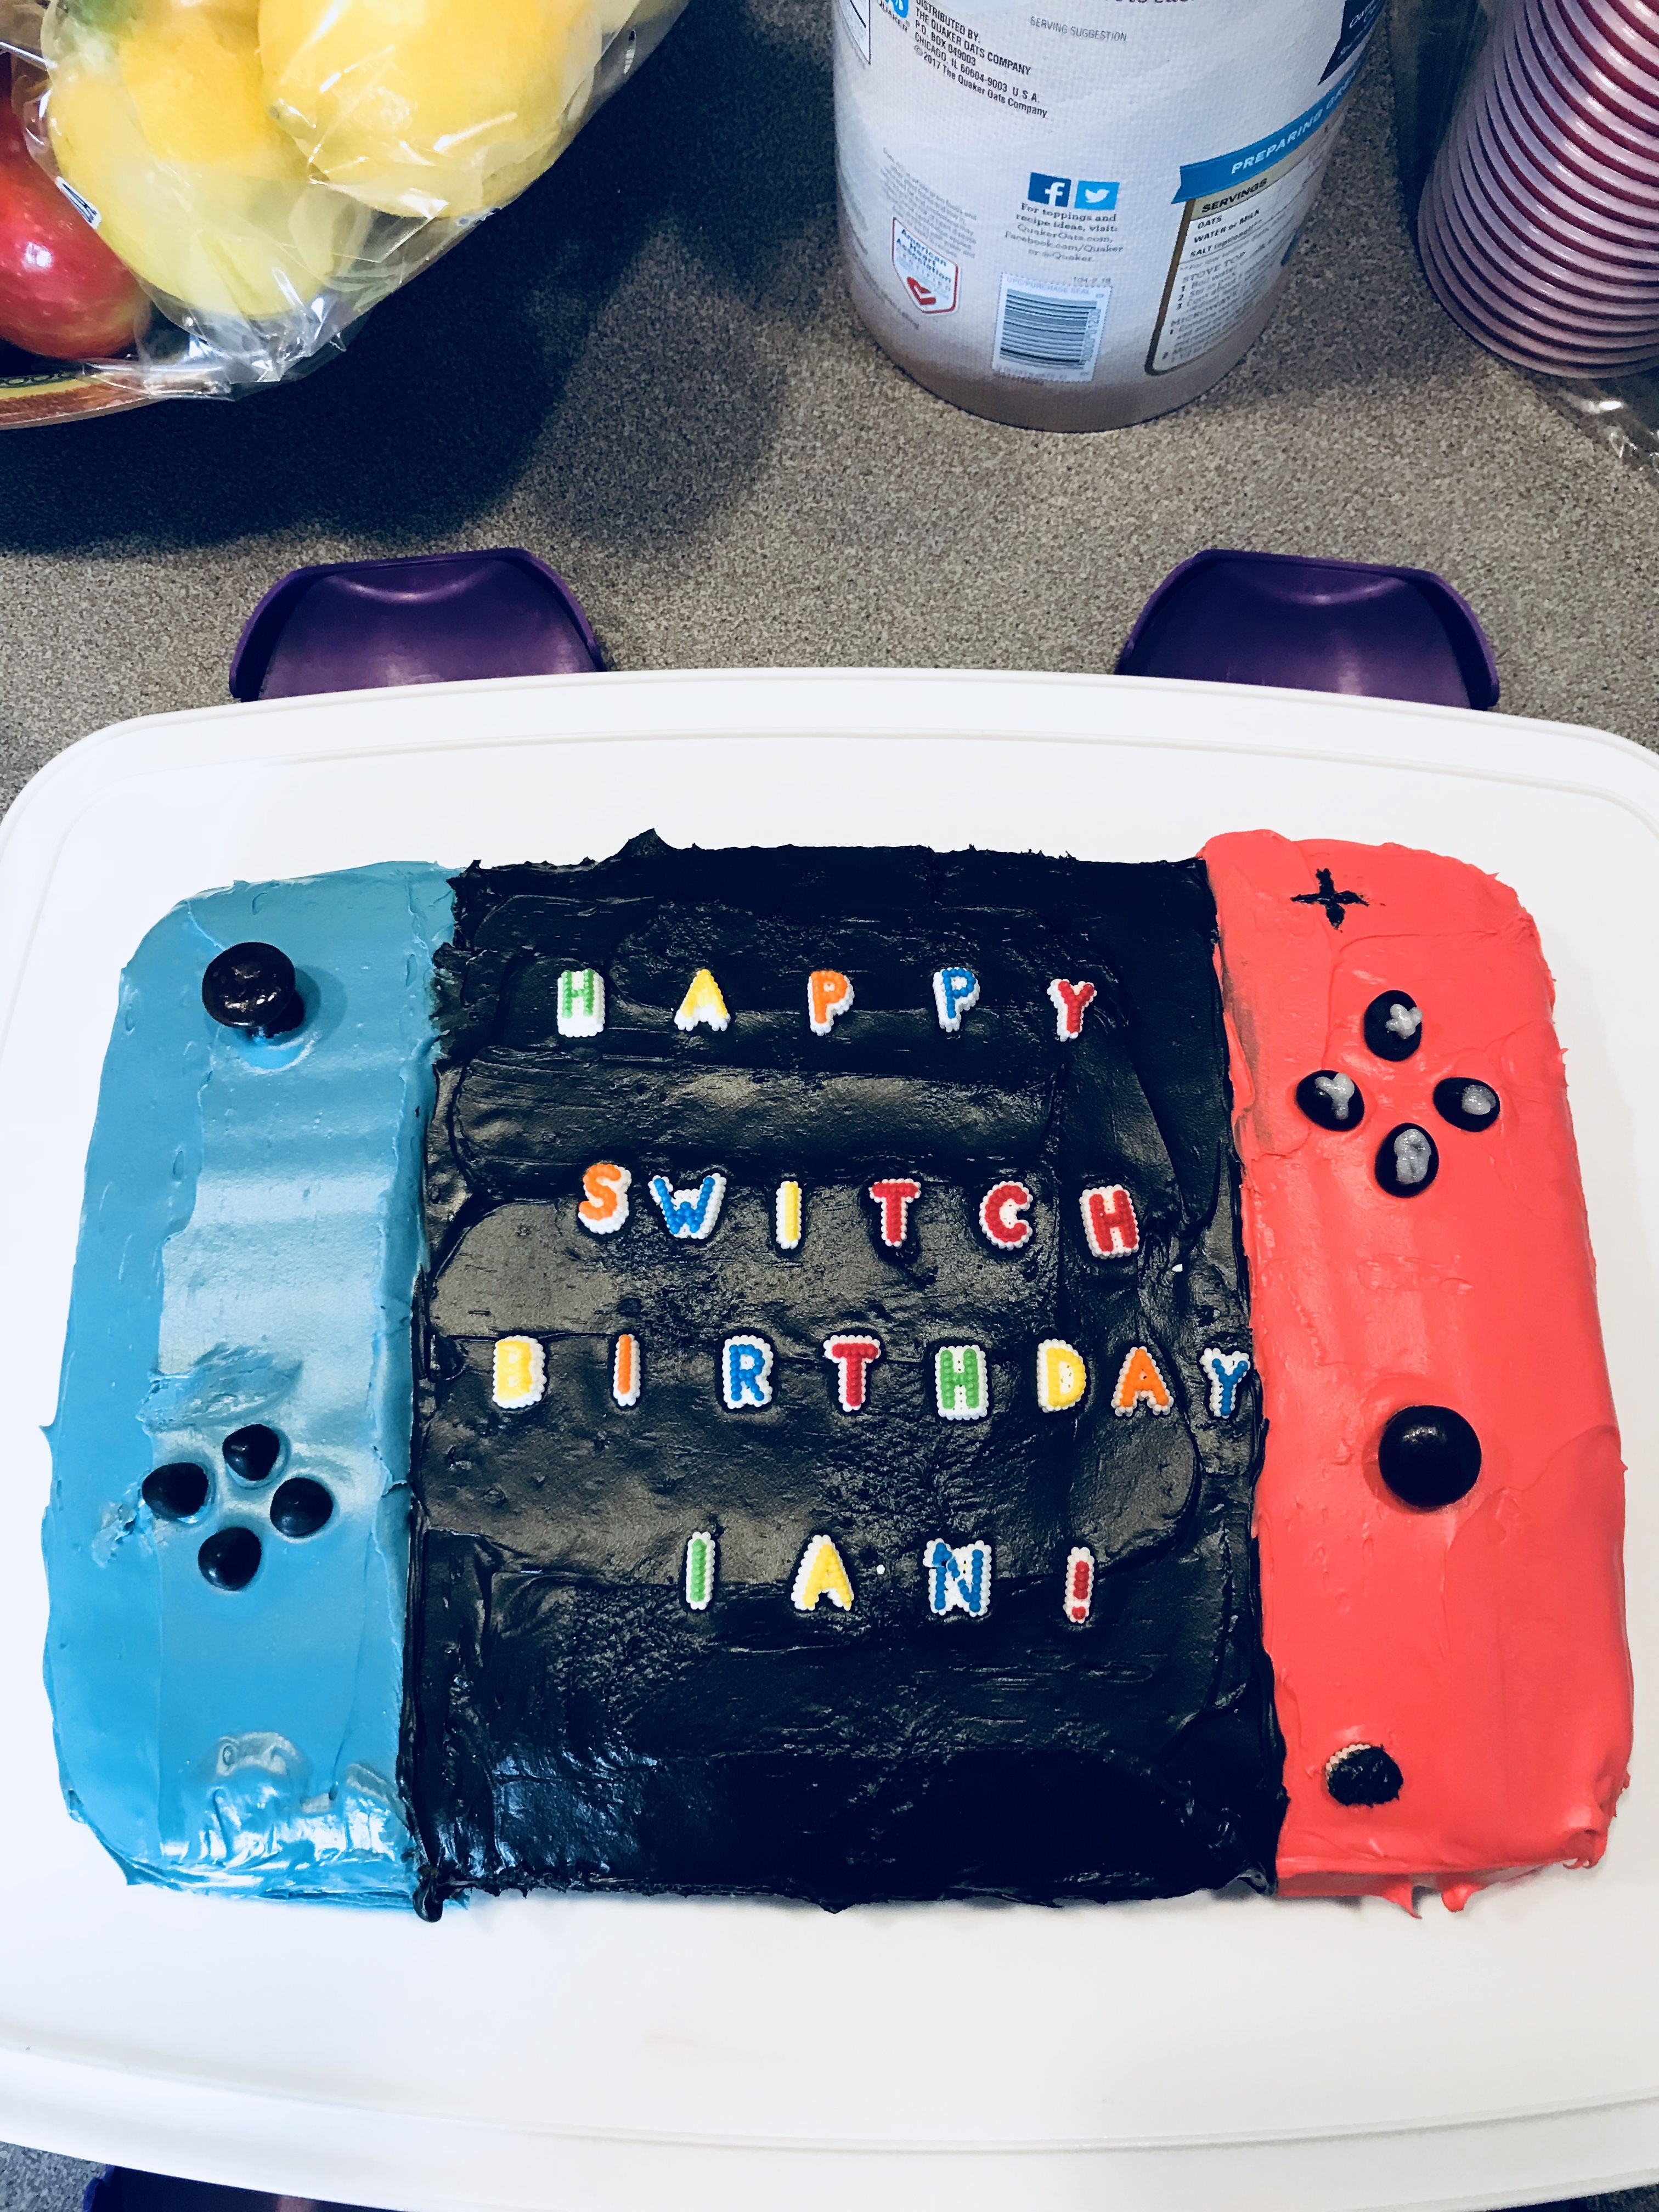 Miraculous Nintendo Switch Cake With Images Video Game Party Party Games Funny Birthday Cards Online Drosicarndamsfinfo